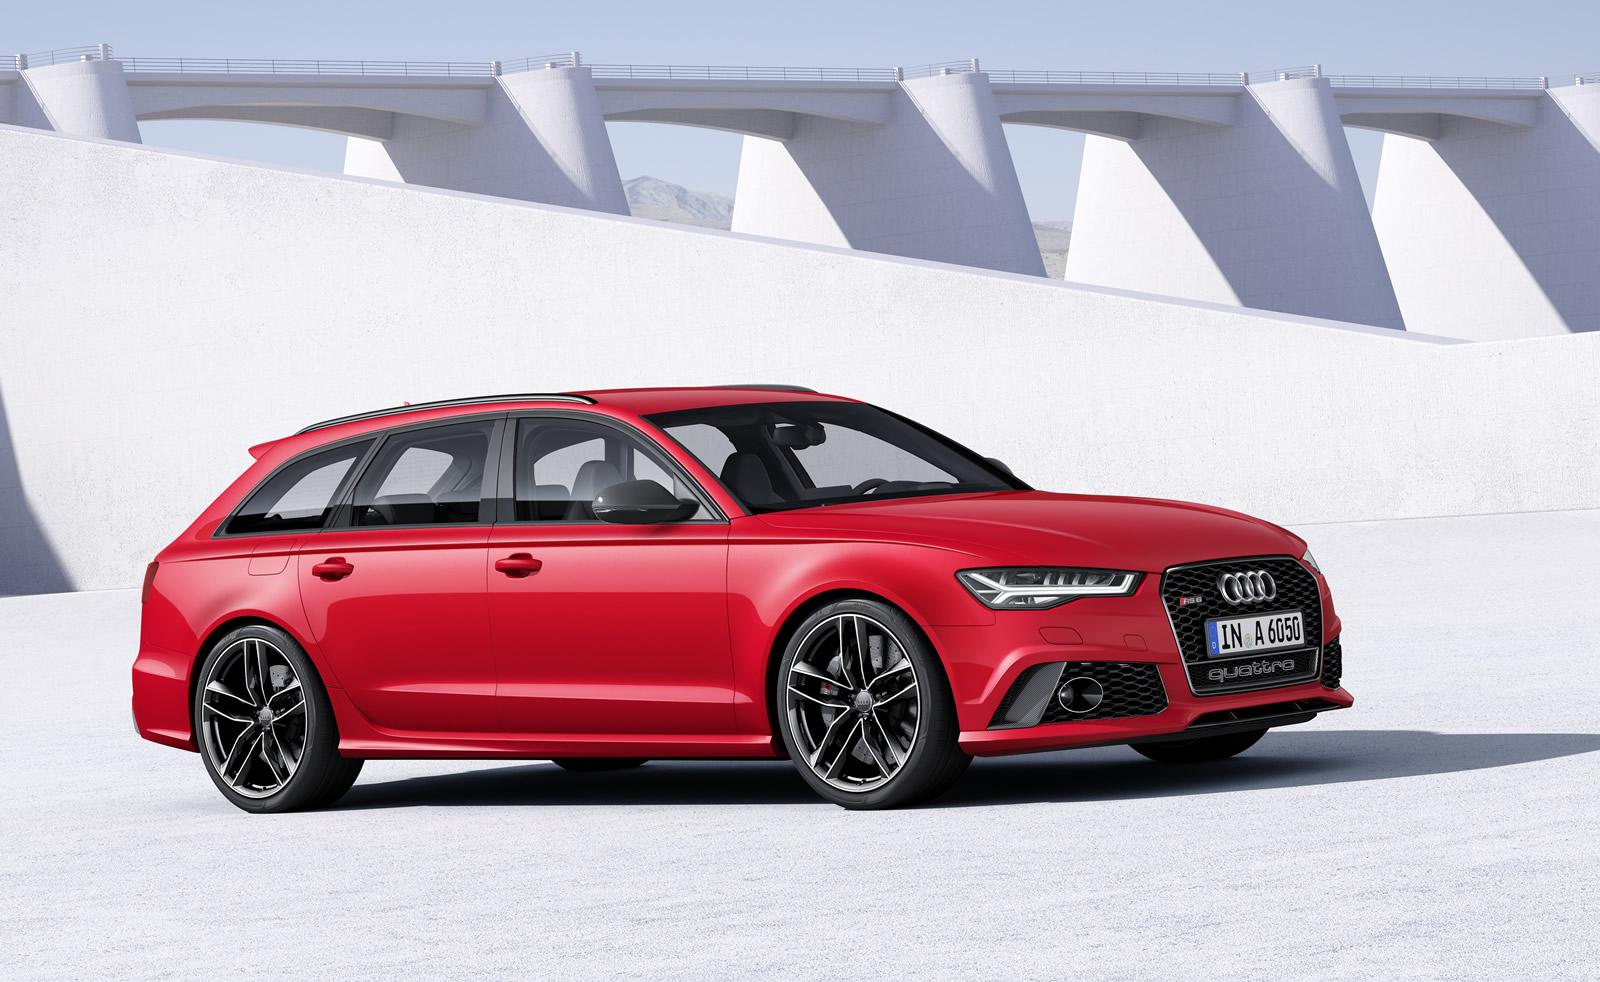 Audi a4 s line station wagon 2015 black edition 12